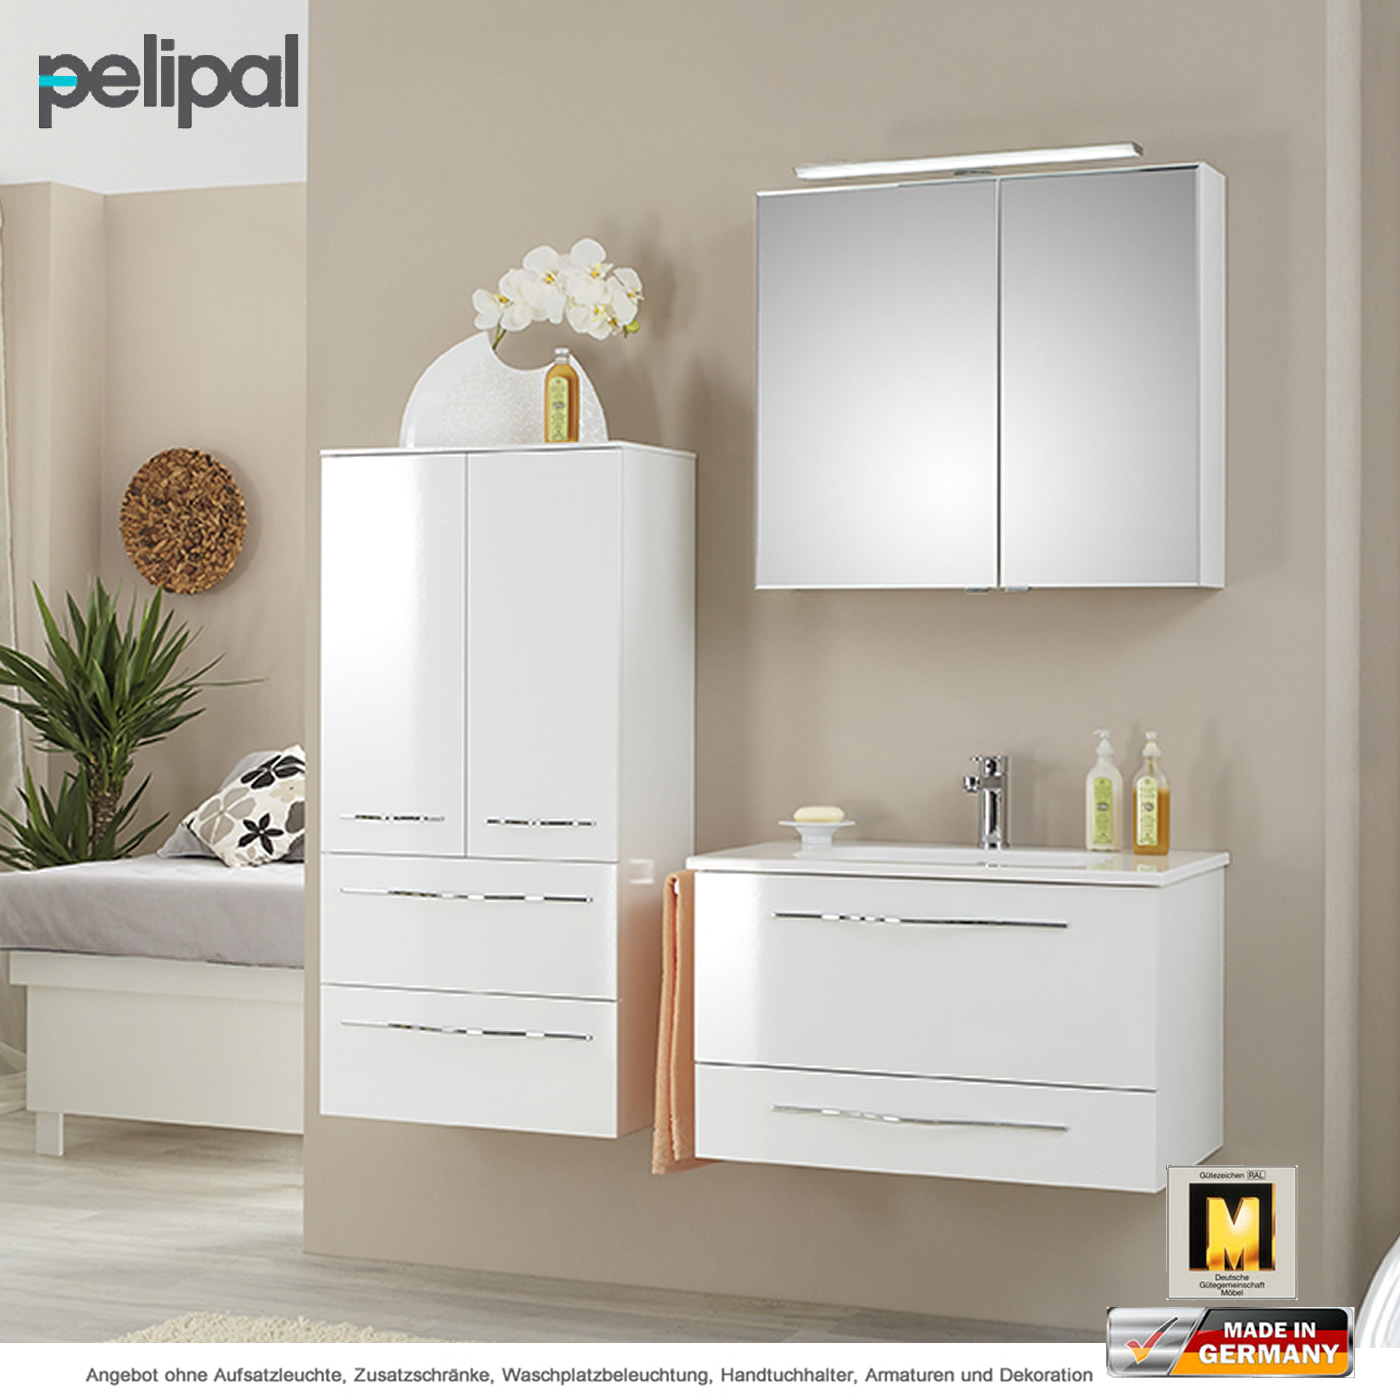 pelipal badm bel solitaire 6110 als set 80 cm mit spiegelschrank inkl ledplus aufsatzleuchte. Black Bedroom Furniture Sets. Home Design Ideas